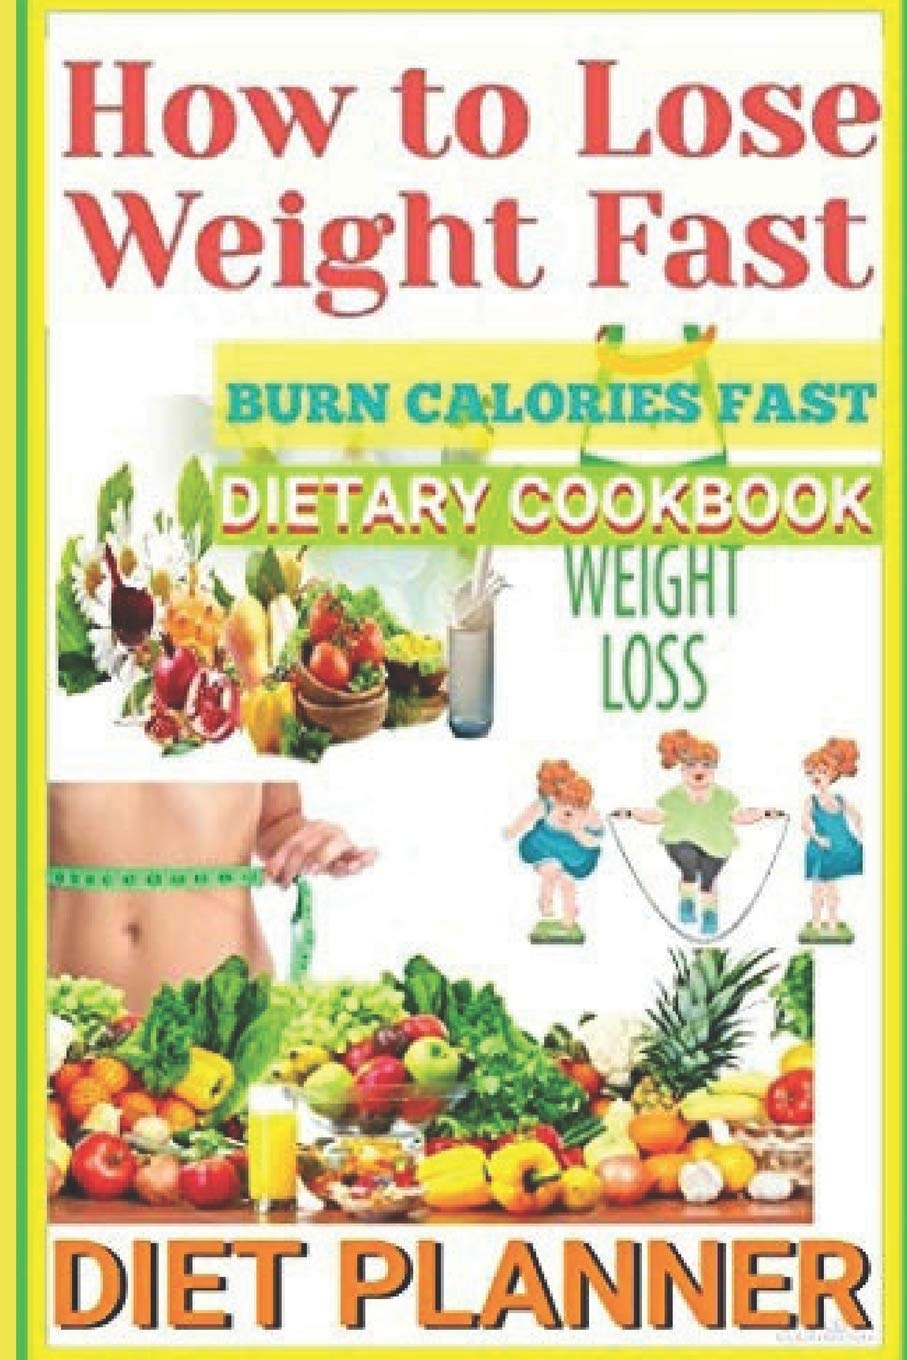 What eat of weight to fast list to lose